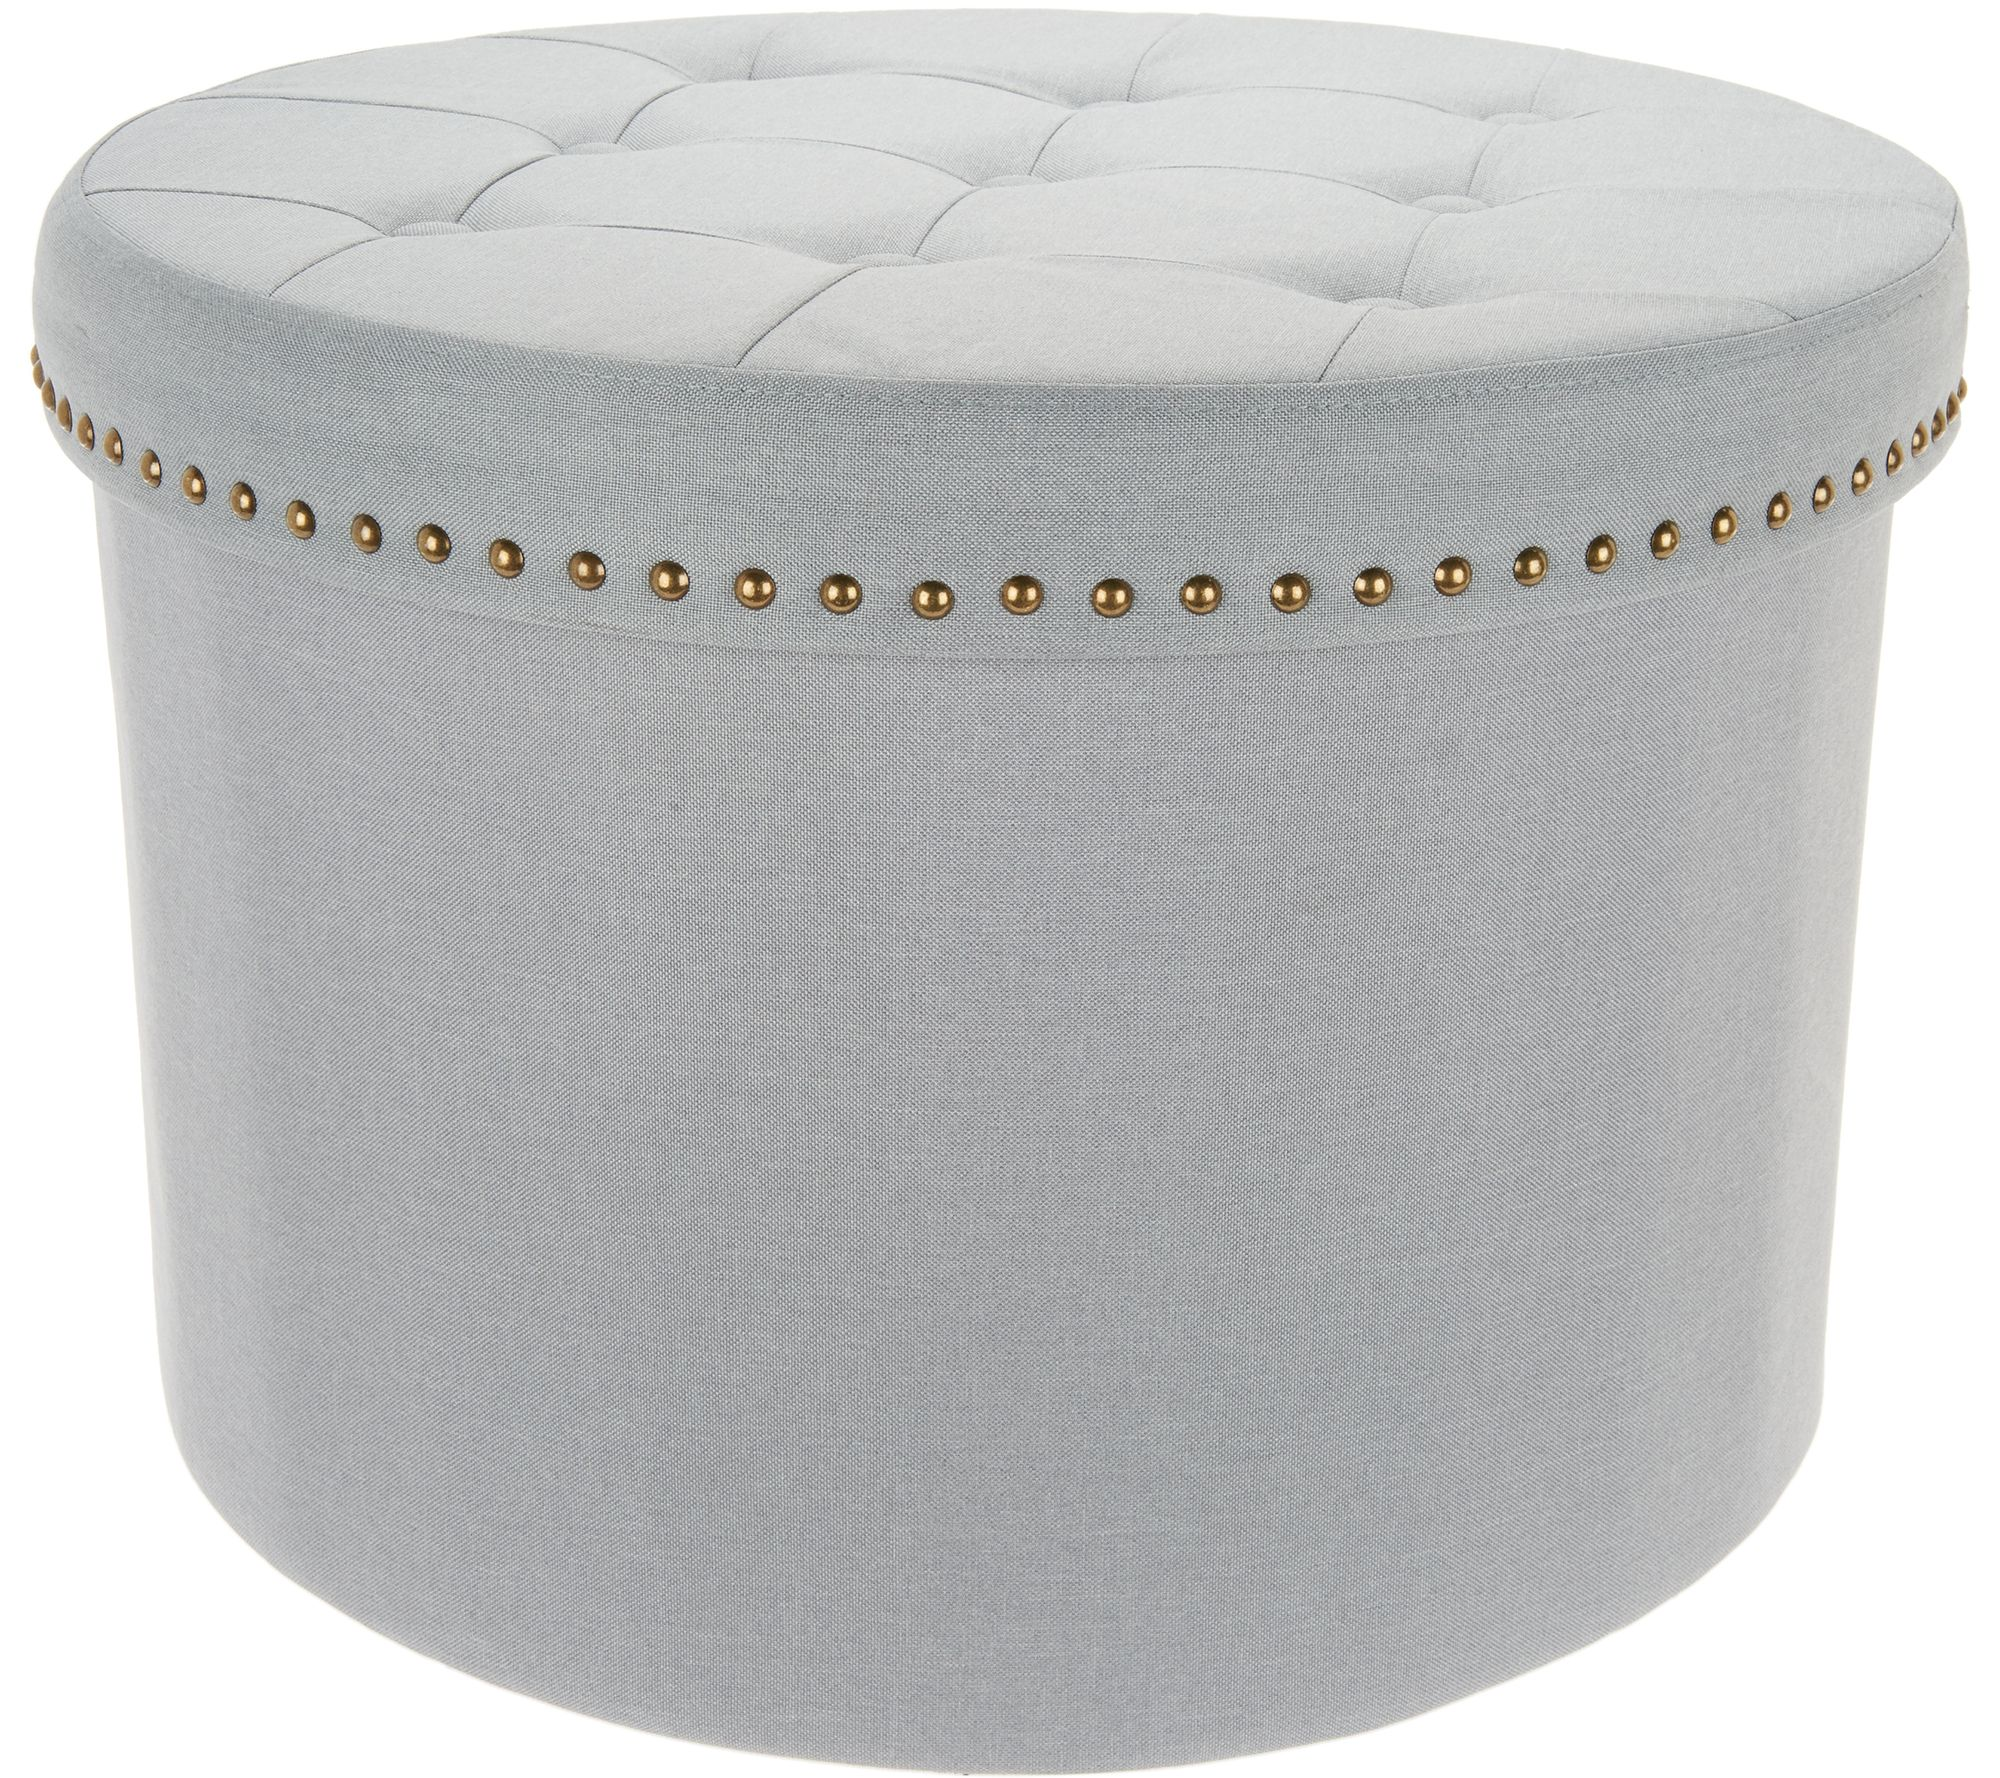 Inspire Me Home Decor 24Round Tufted Collapsible Storage Ottoman